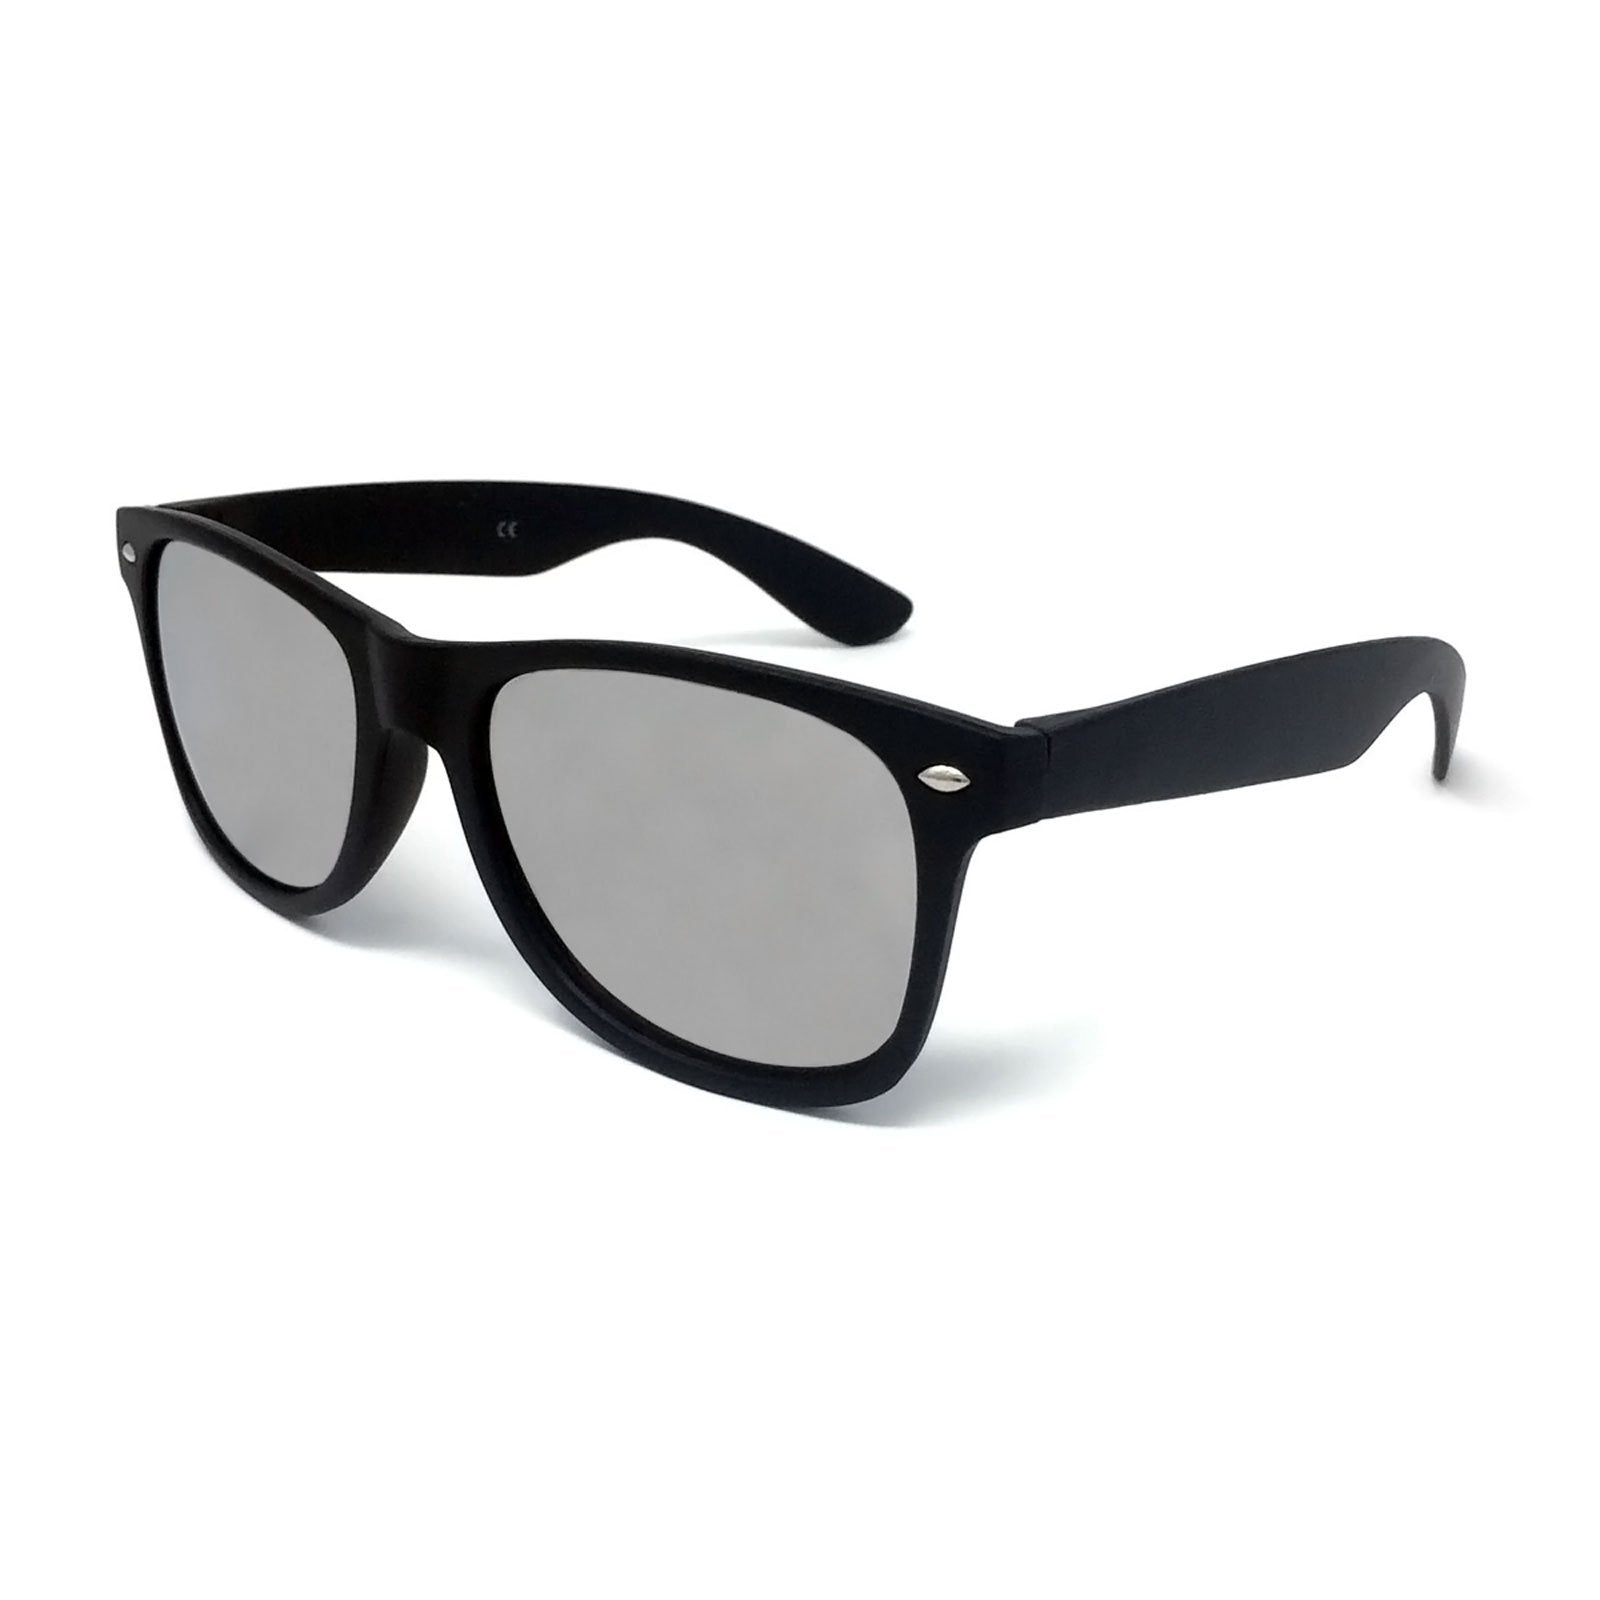 Wholesale Classic Sunglasses - Matte Black Frame, Silver Mirrored Lens